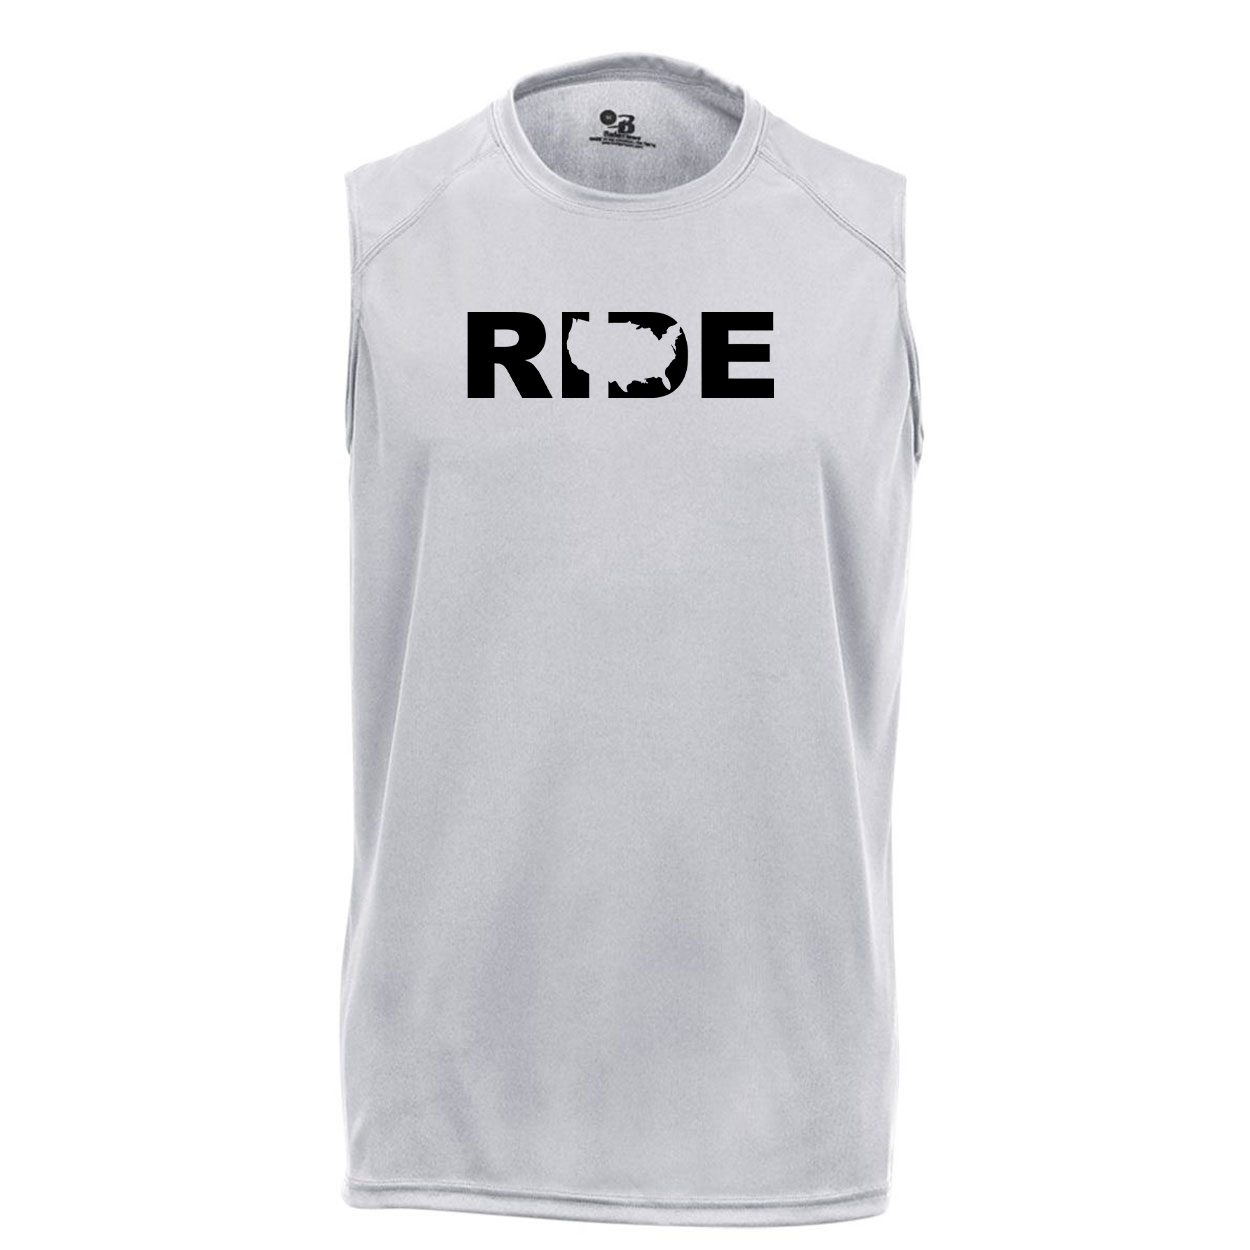 Ride United States Classic Unisex Performance Sleeveless T-Shirt Silver Gray (Black Logo)